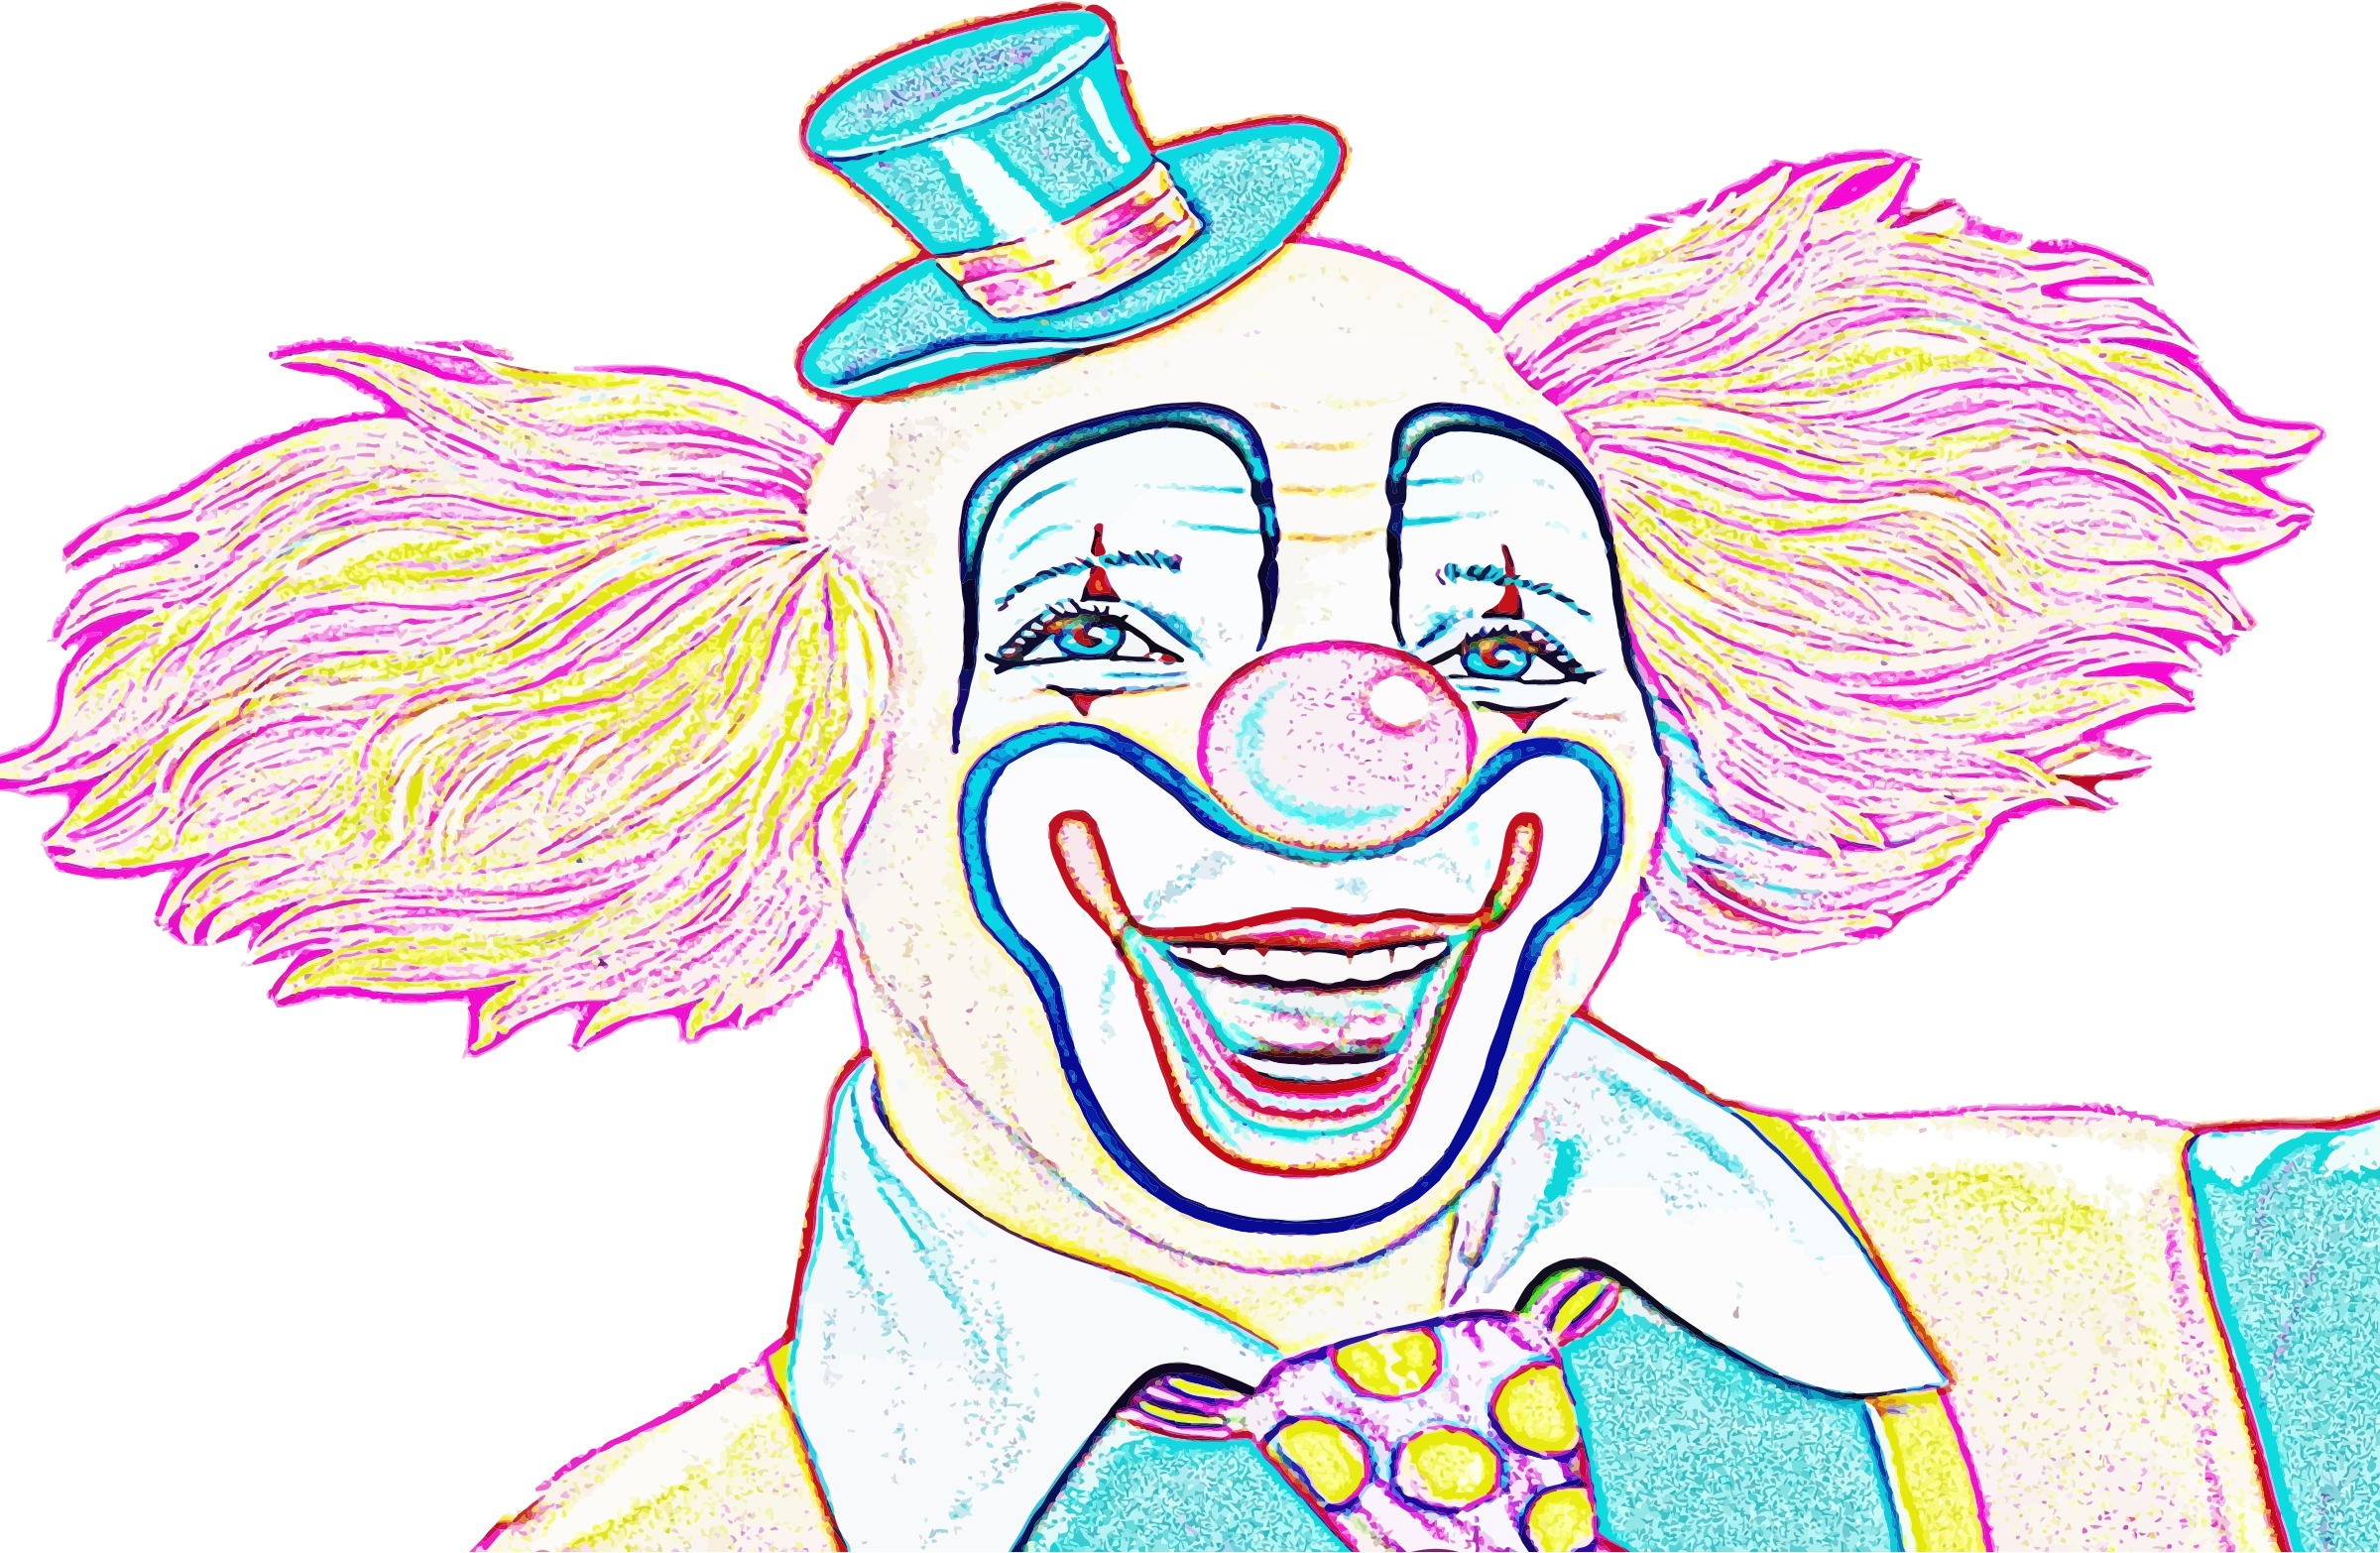 Colorful Clown Sketch by GDJ